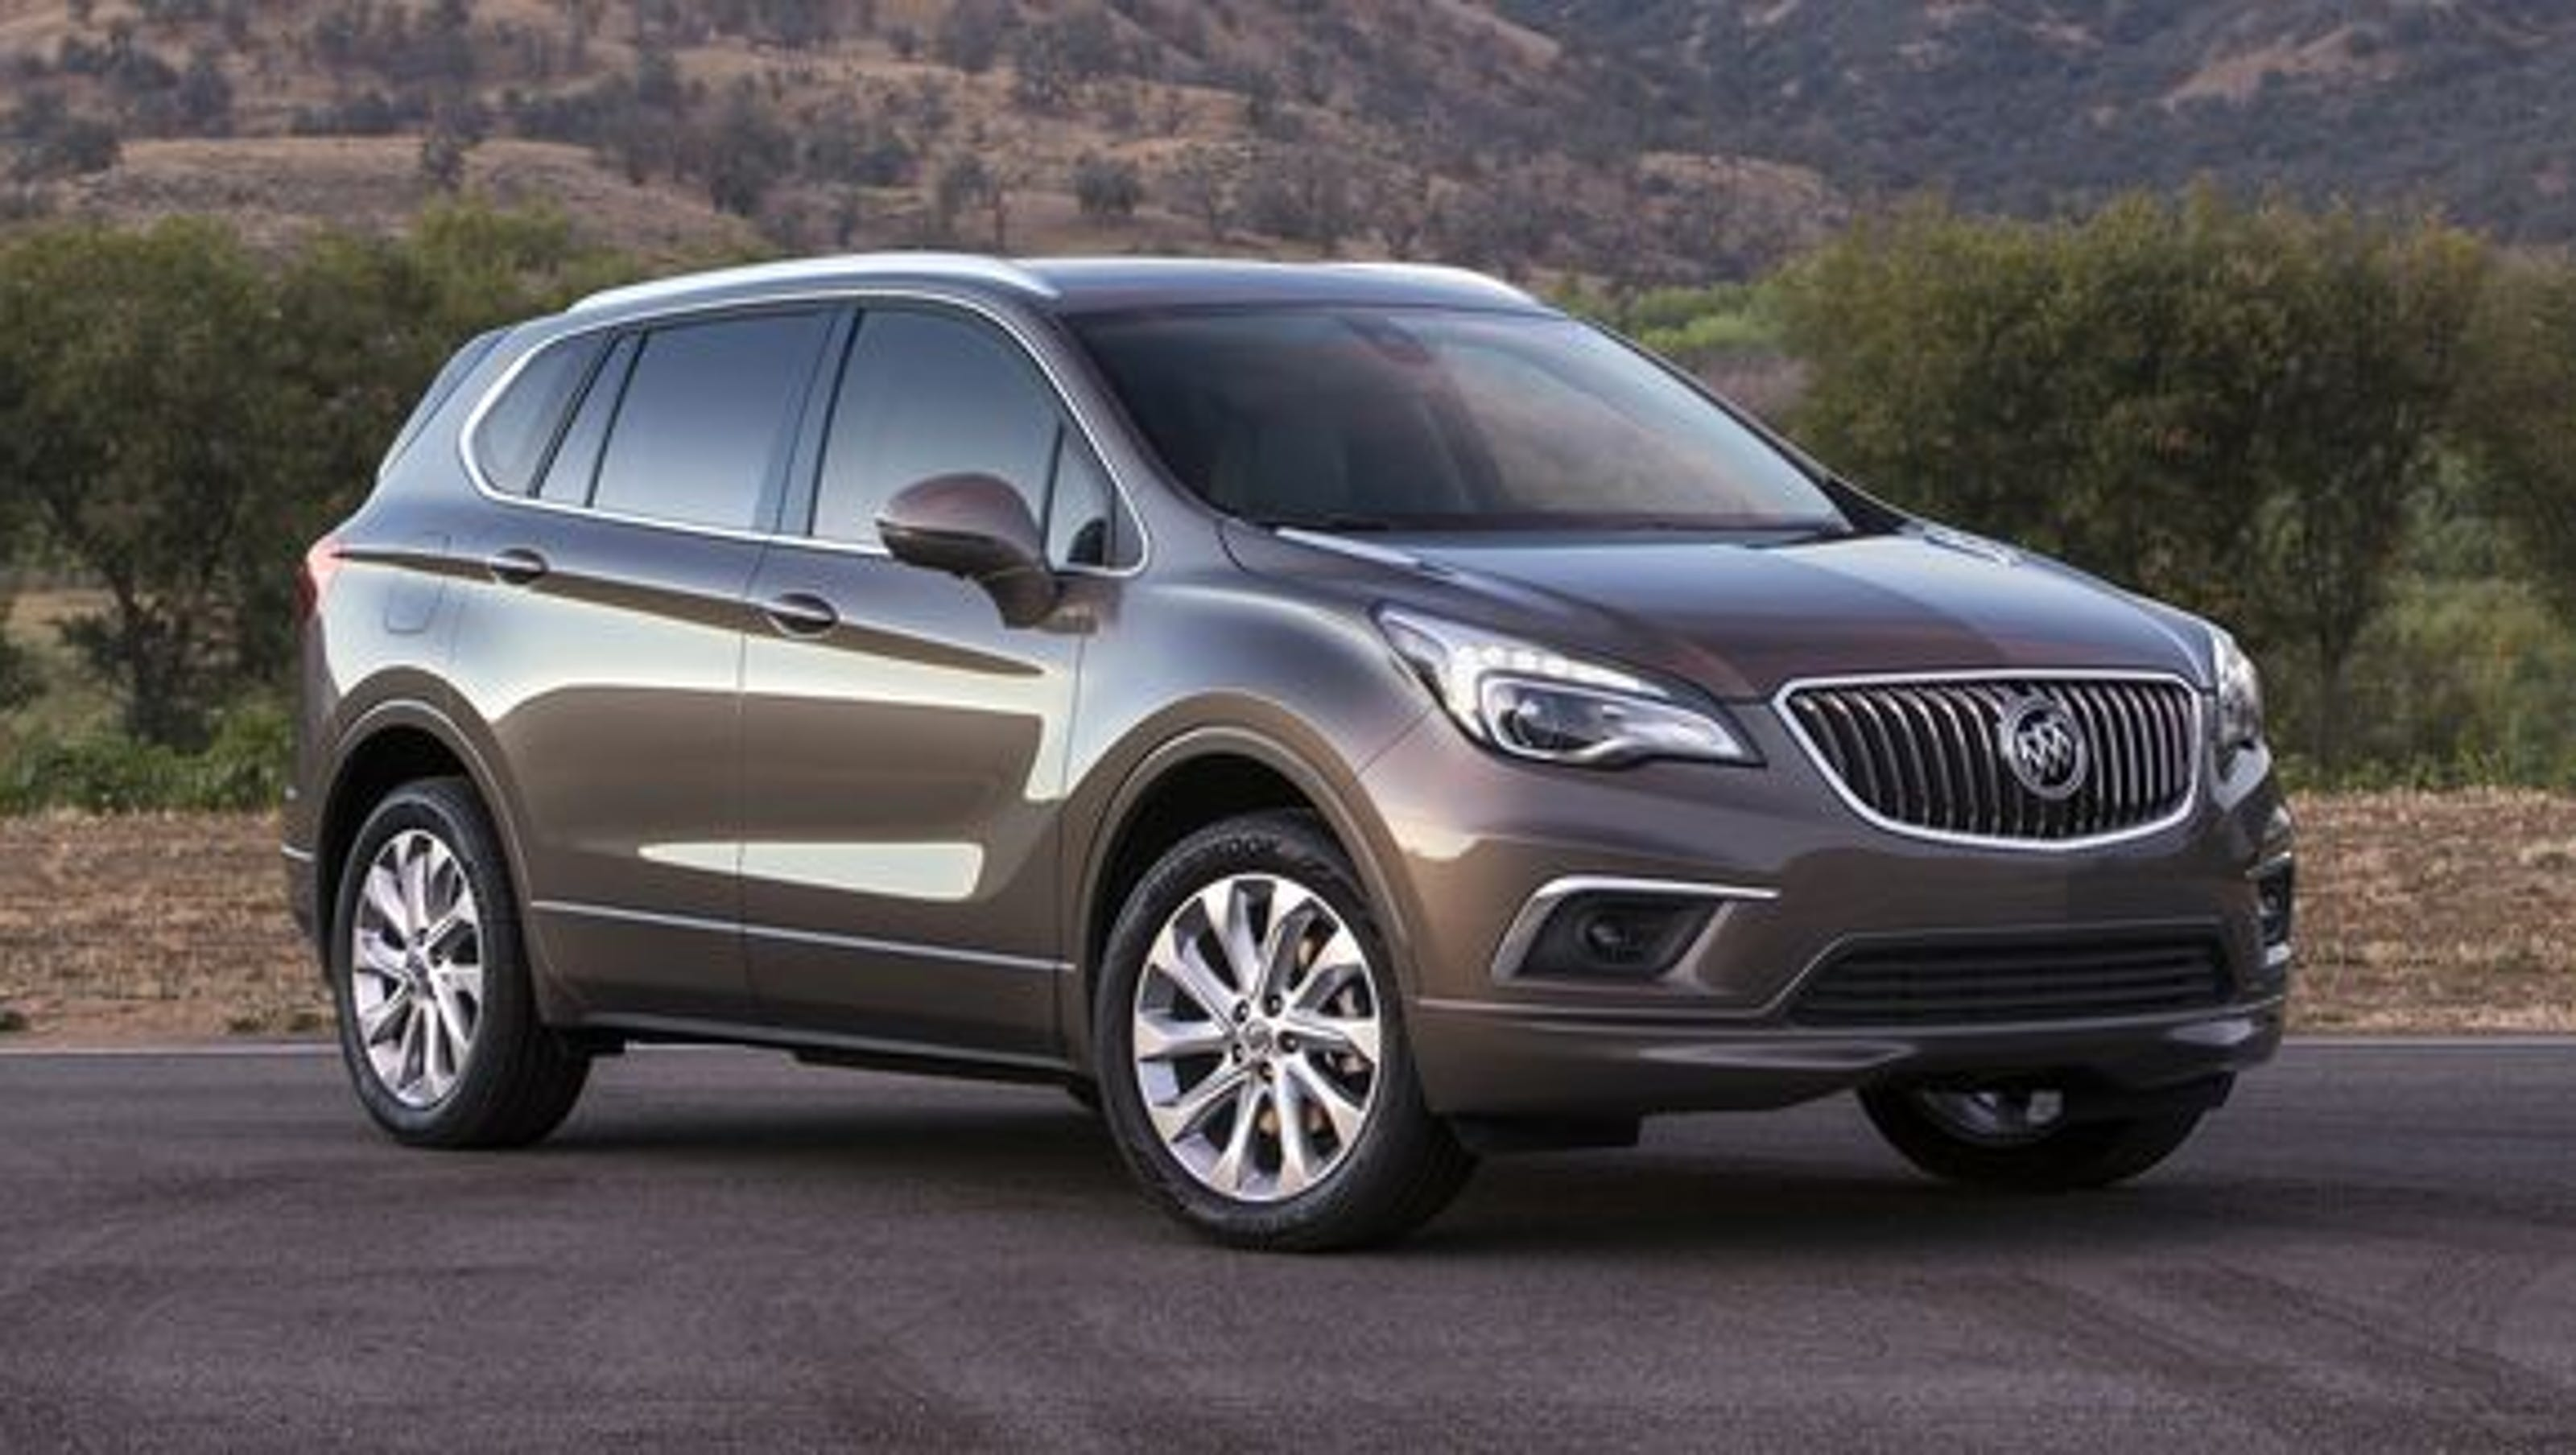 Buick shows photos of Chinese-made Envision SUV for U.S.